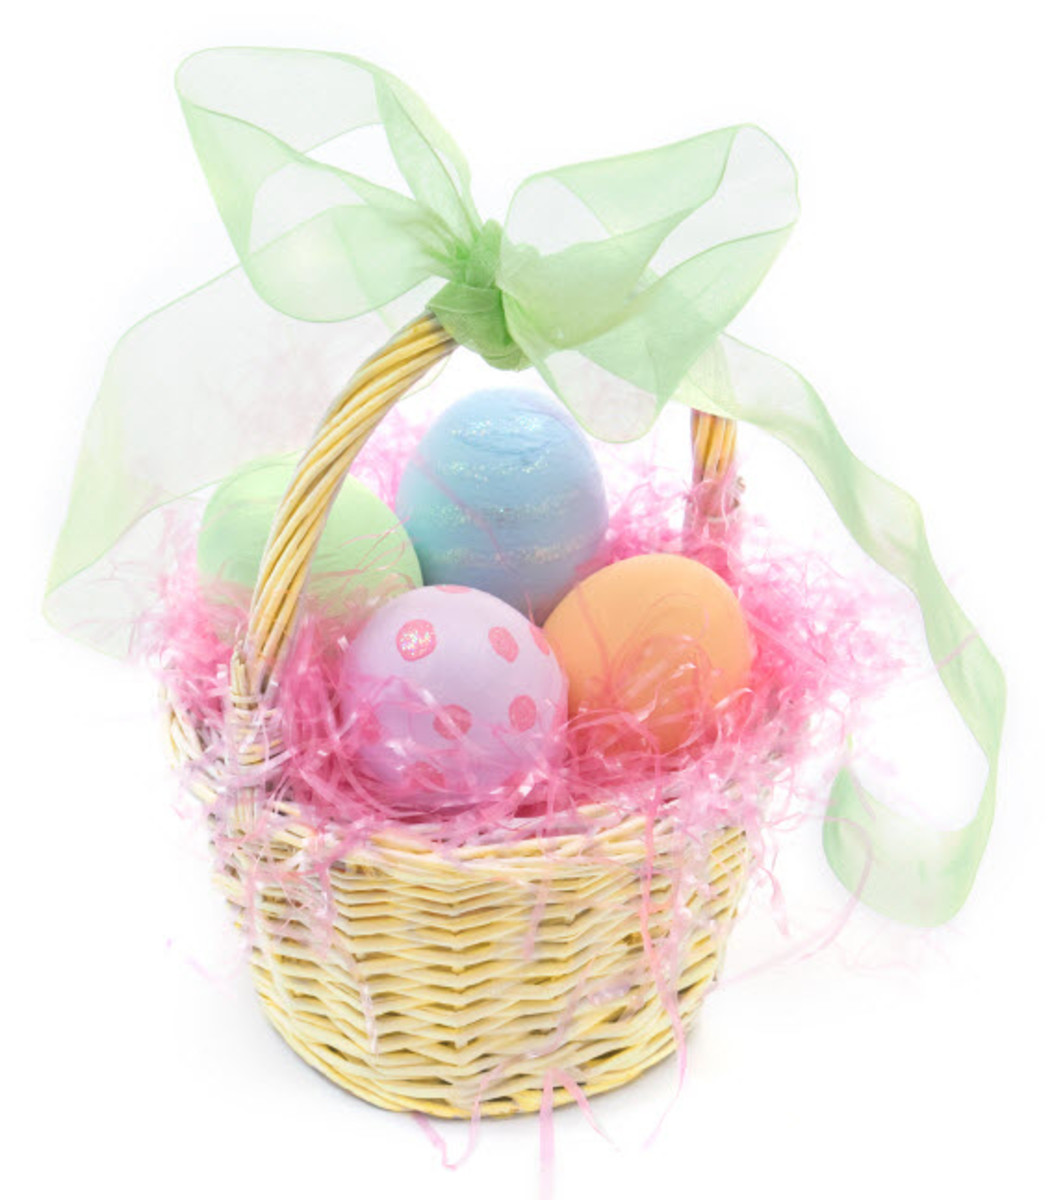 An Easter basket filled with painted eggs.